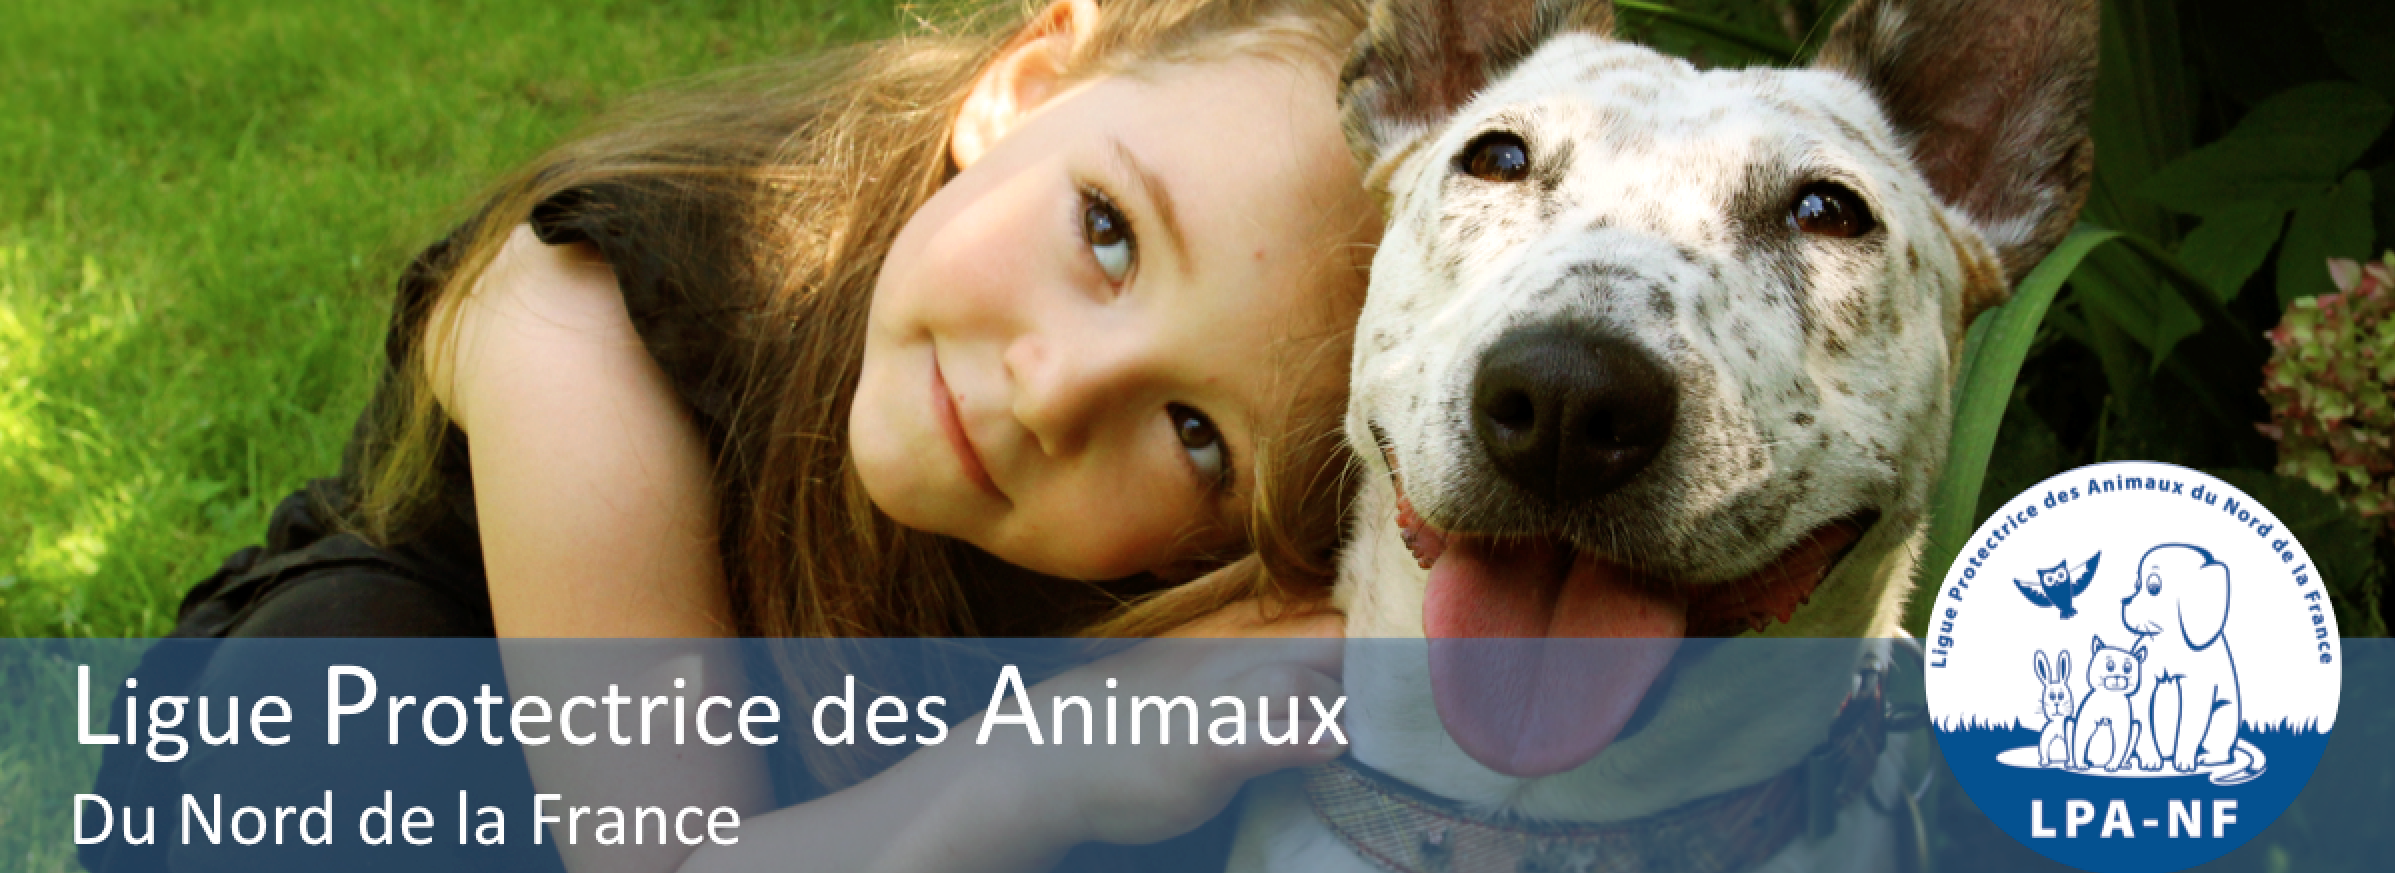 Ligue Protectrice des Animaux